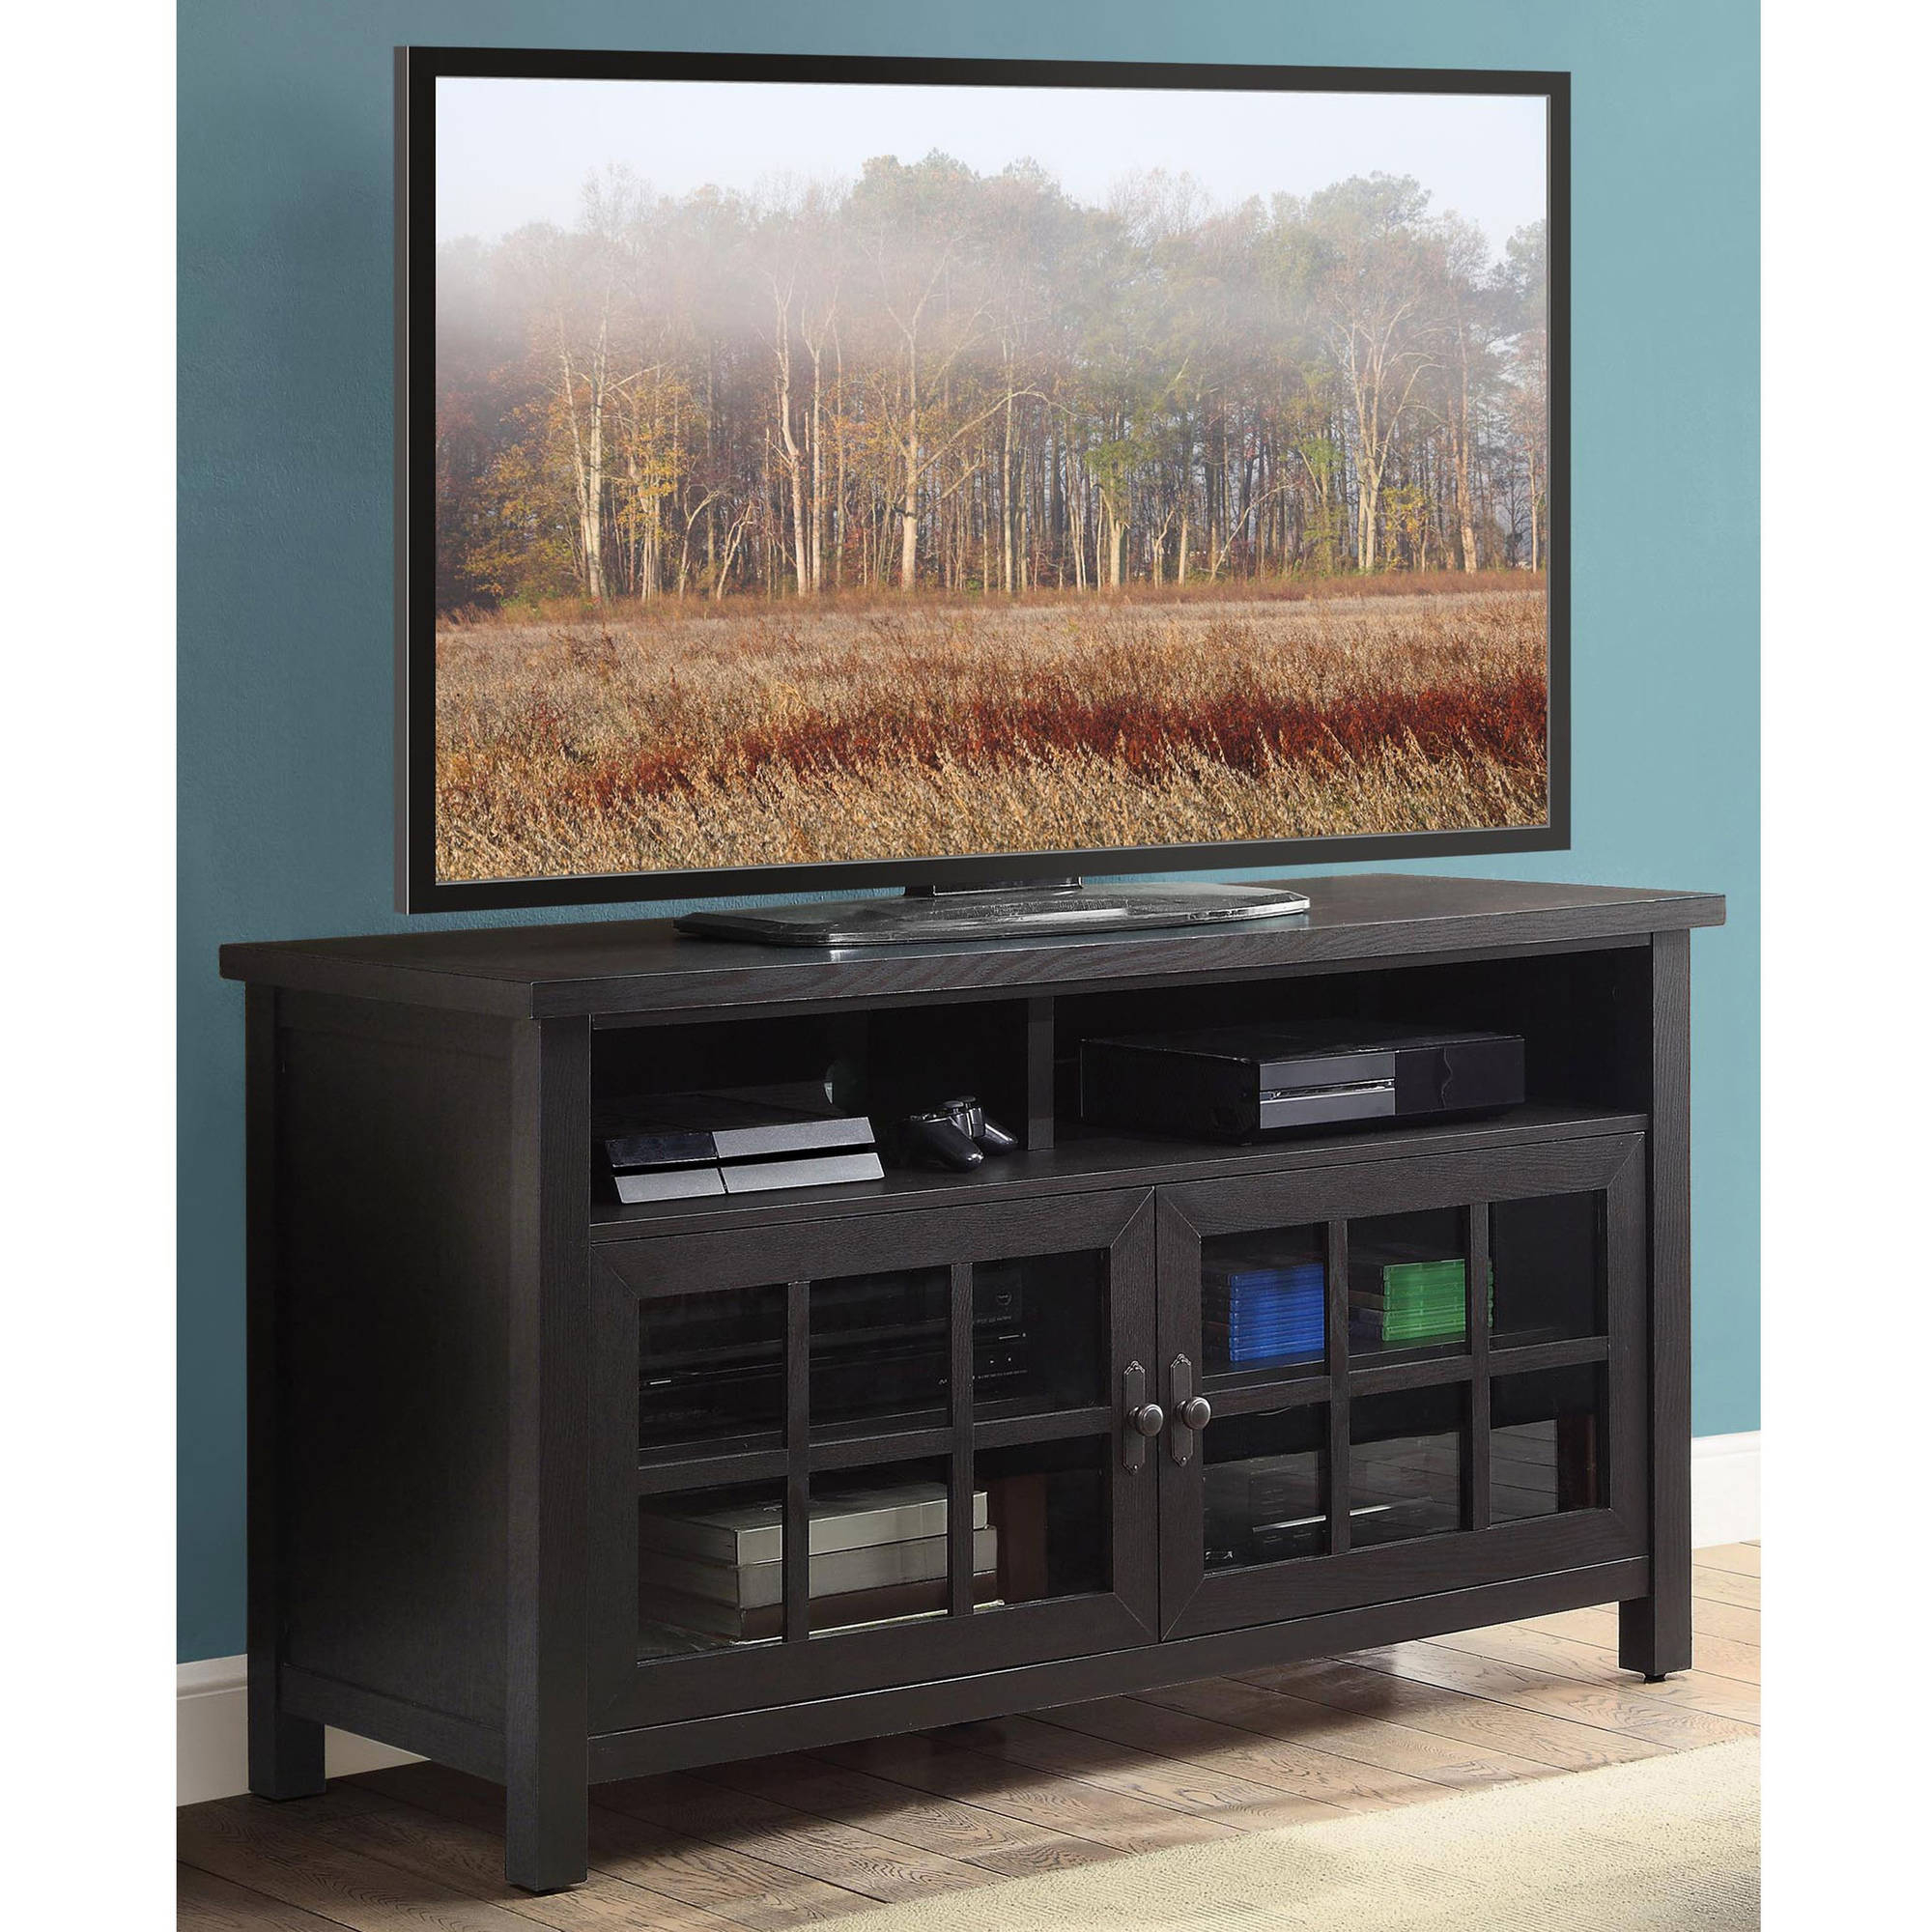 Whalen Media Fireplace For Your Home Television Stand Fits Tvs Up To Pertaining To Walton 60 Inch Tv Stands (View 28 of 30)